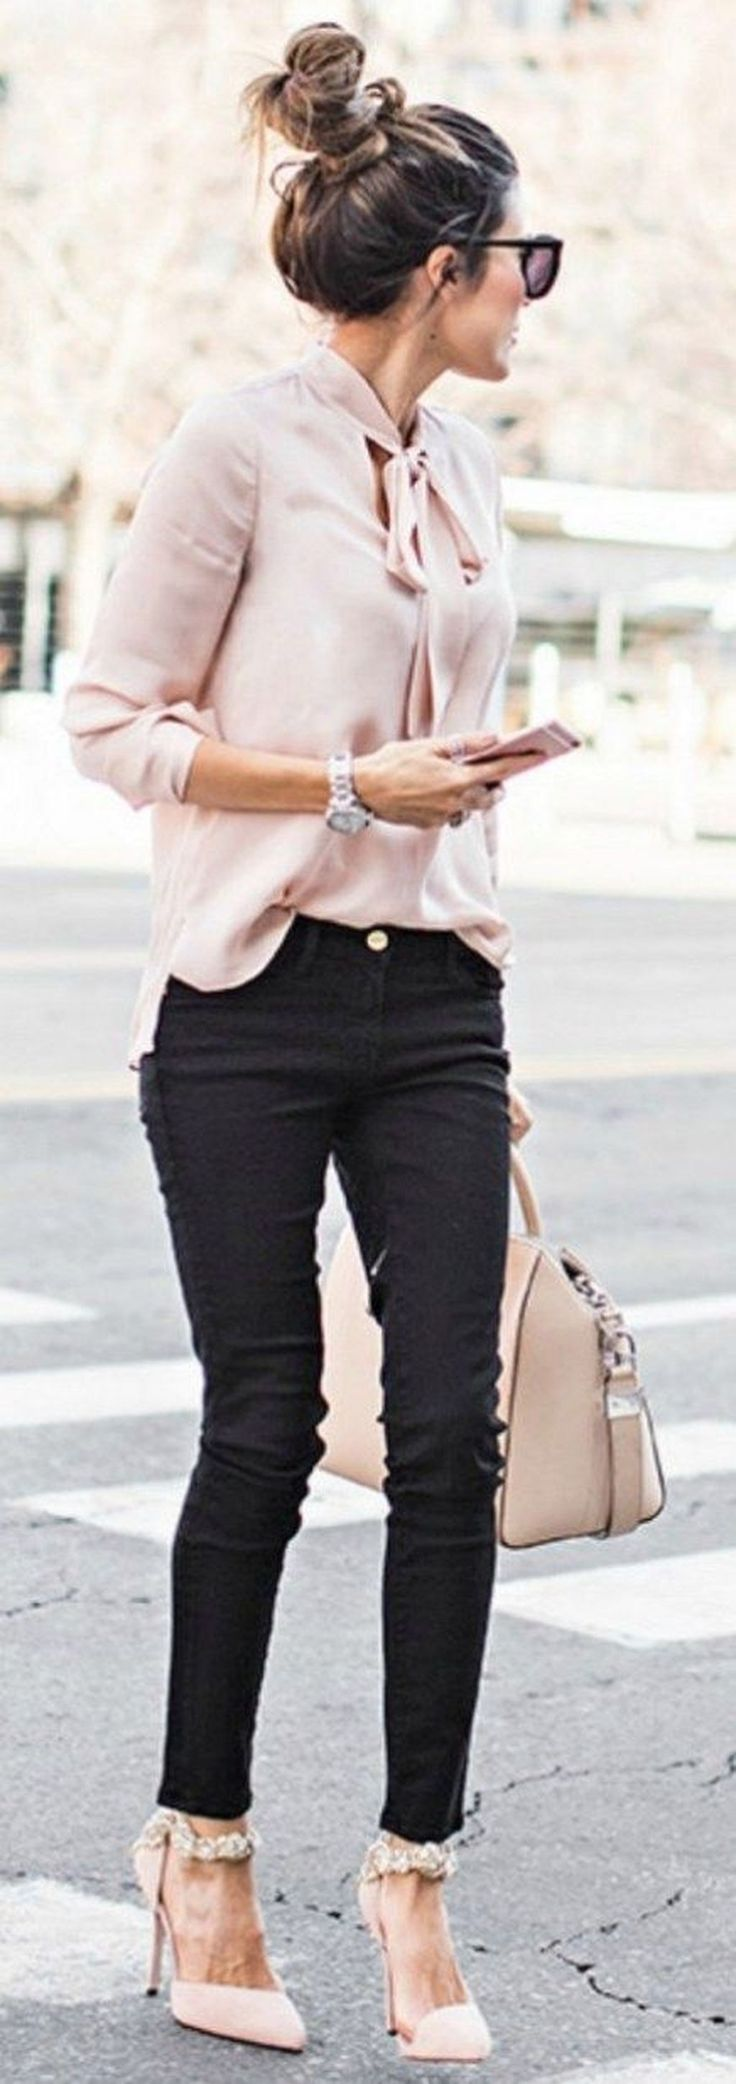 Super summer workwear outfit ideas